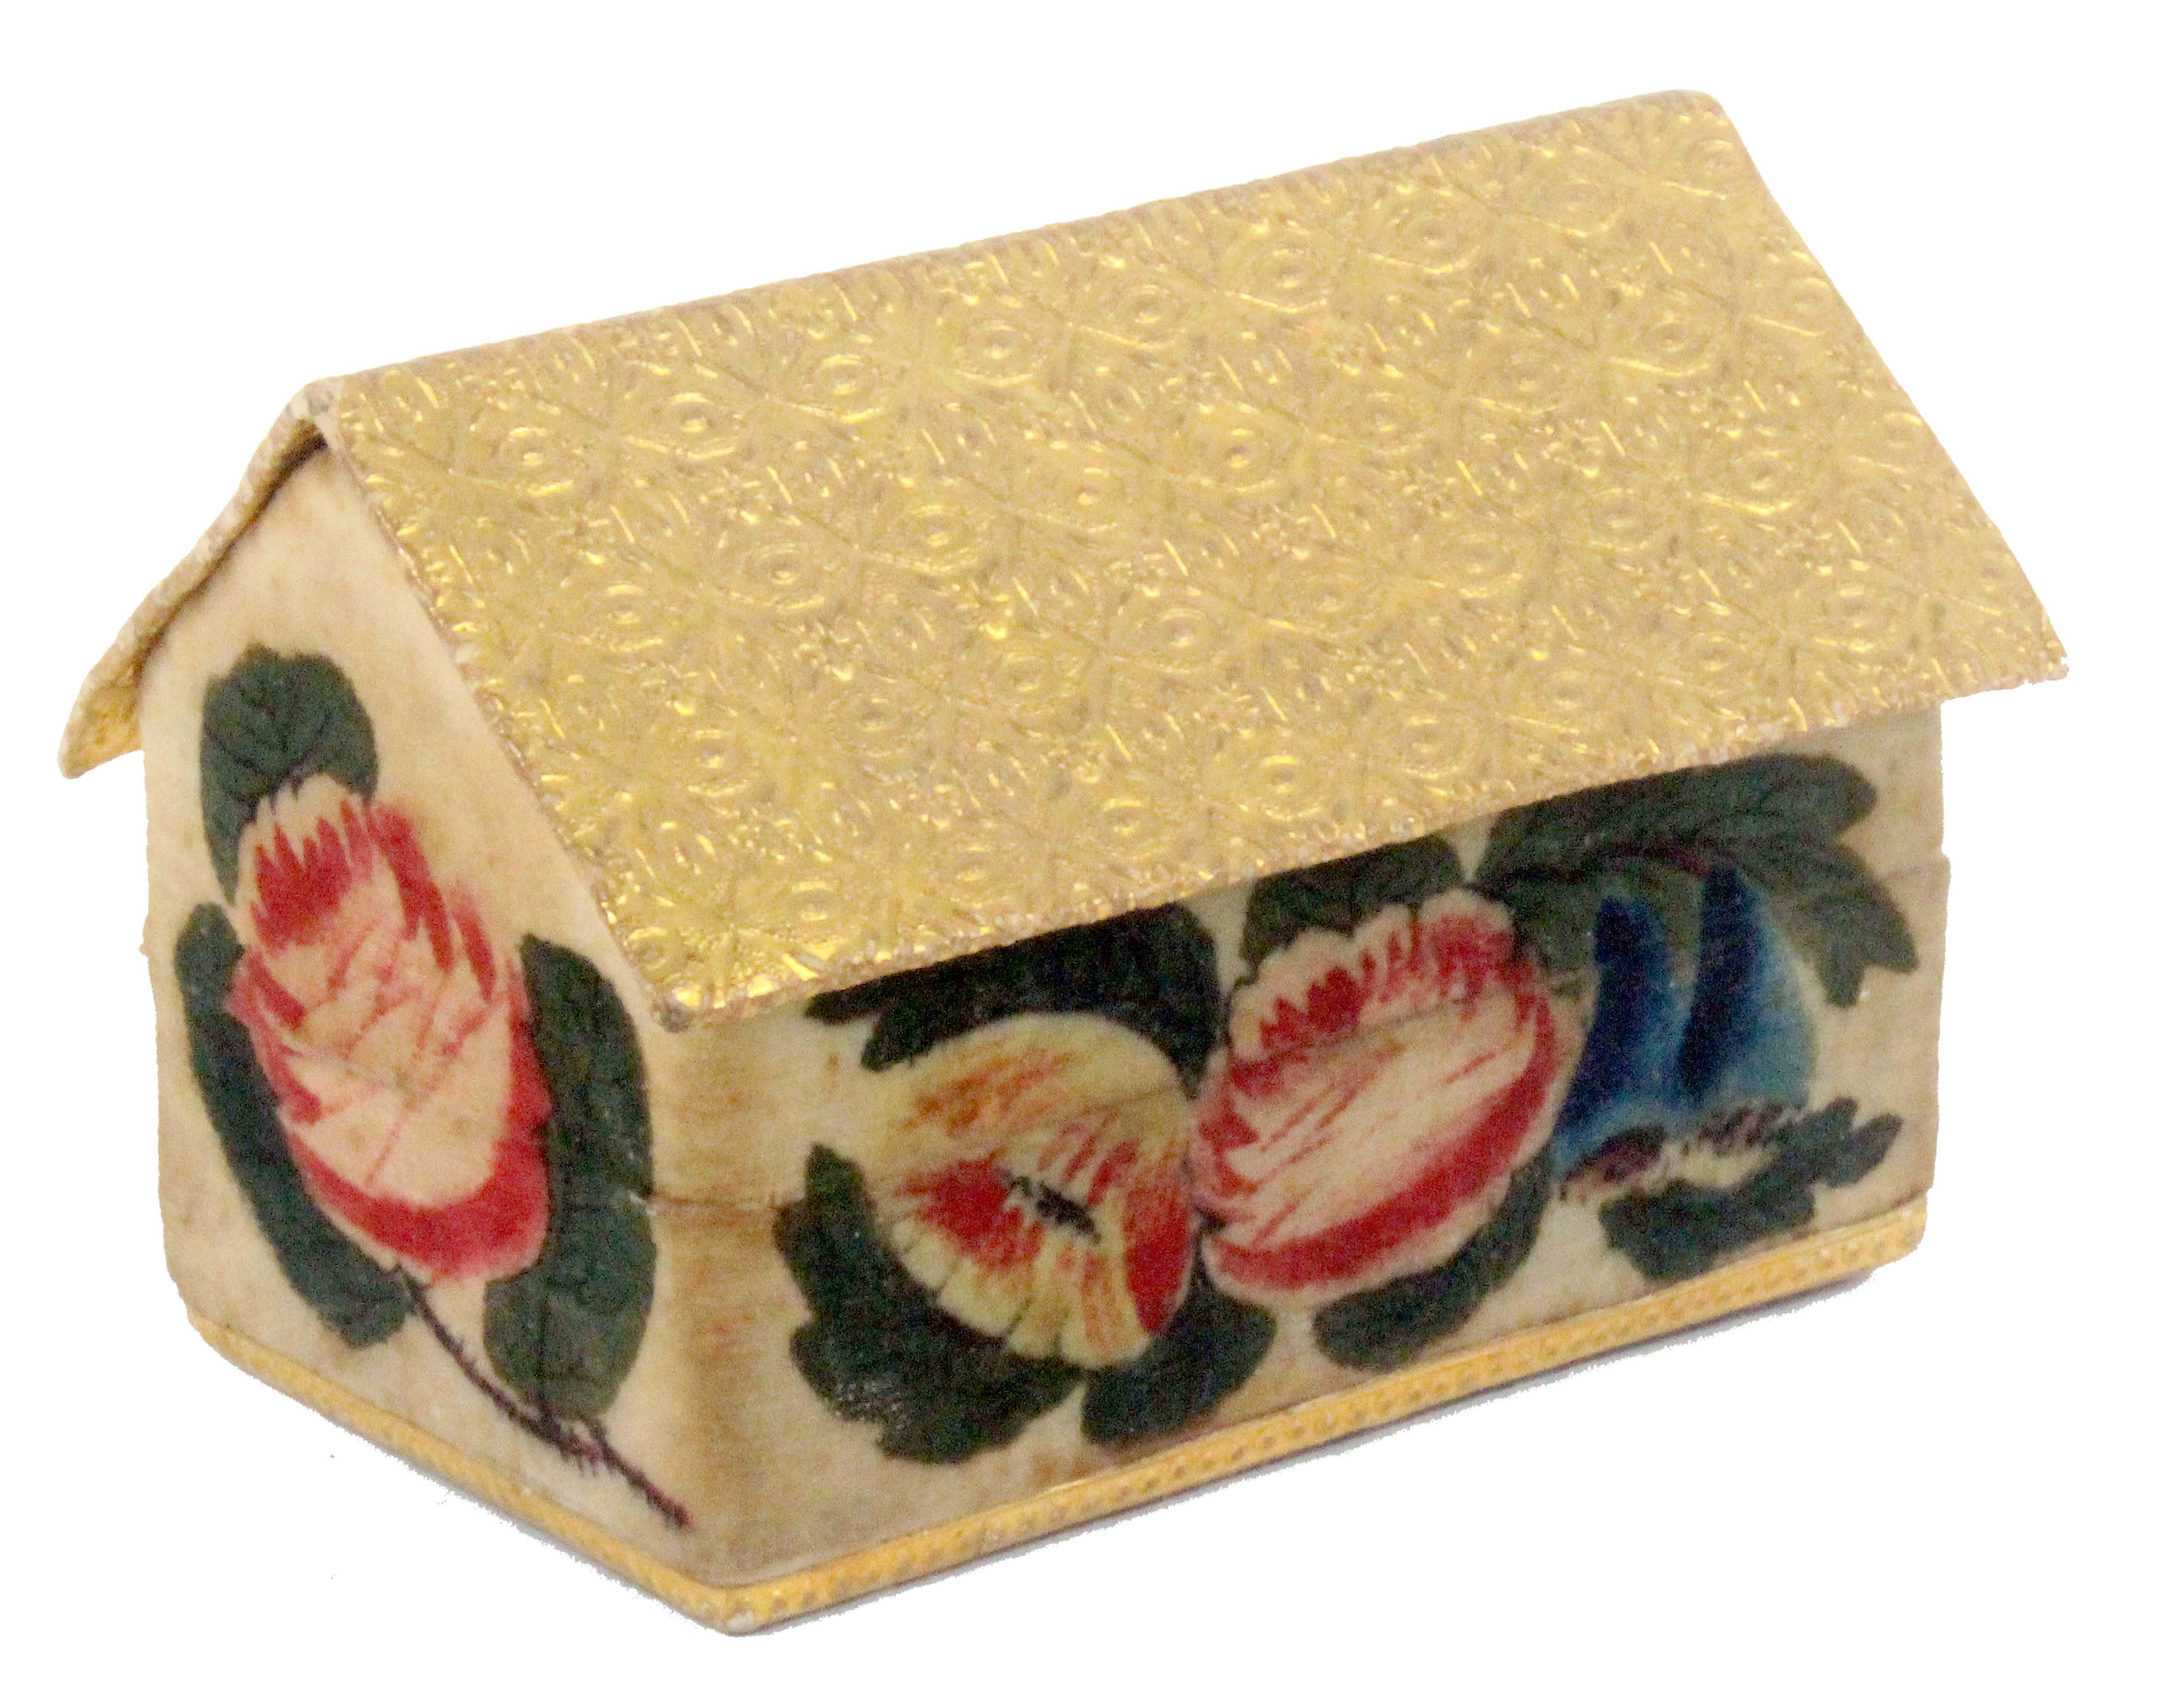 A rare Regency gilt foil and velvet painted child's sewing box in the form of a house, the front and